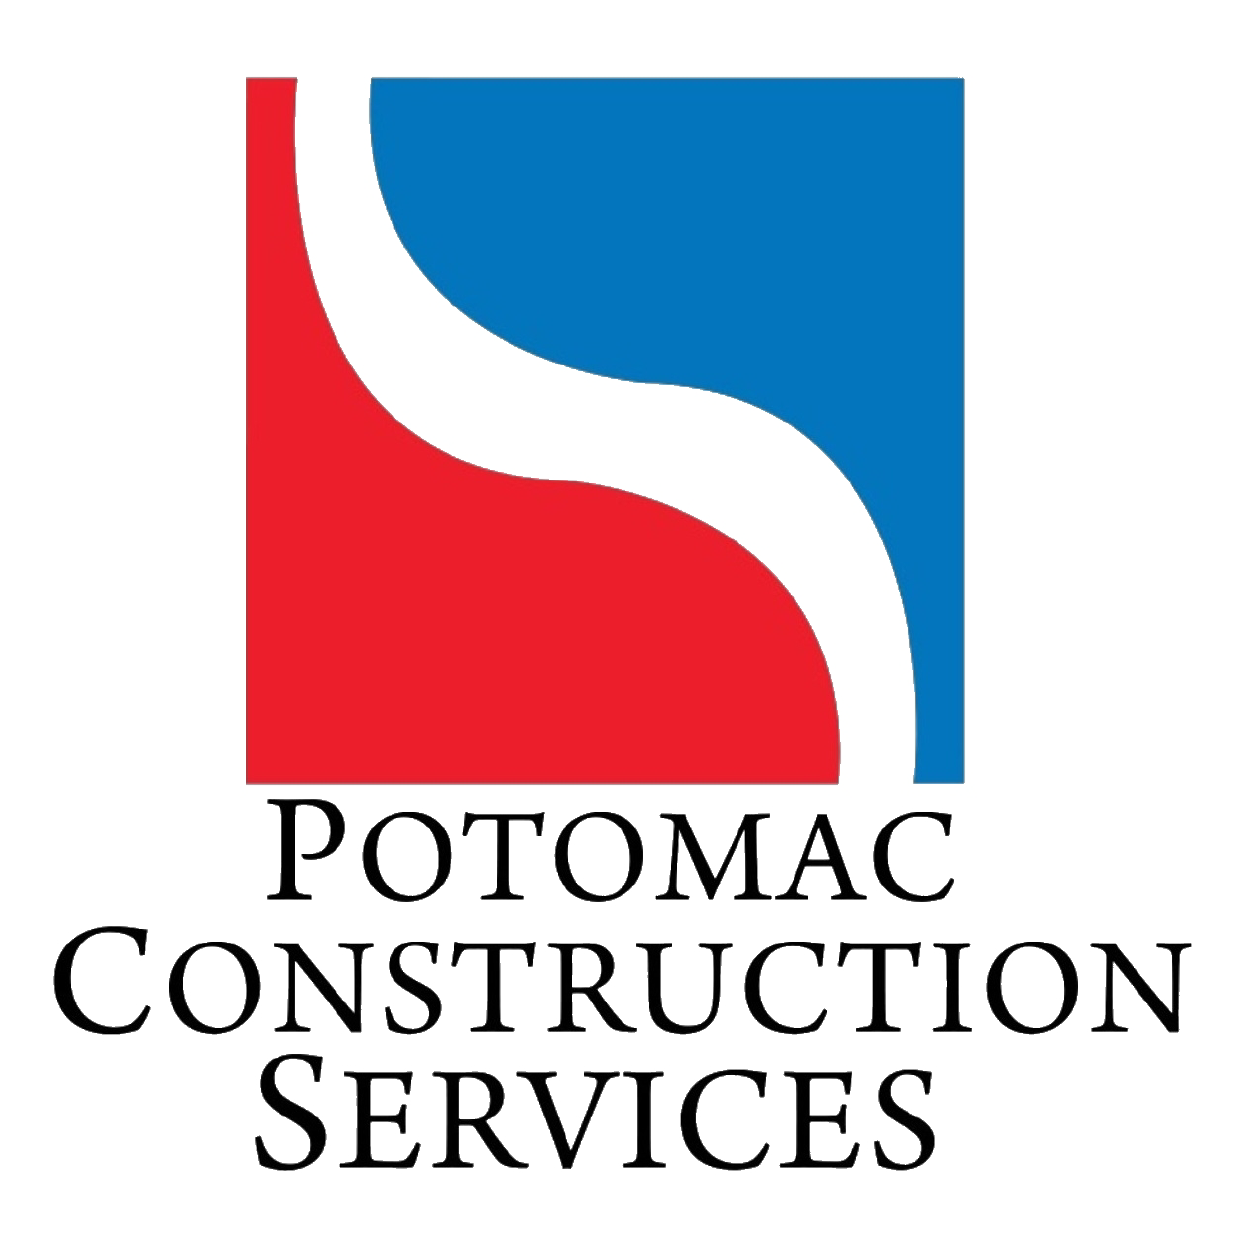 Potomac Construction Services-01.png